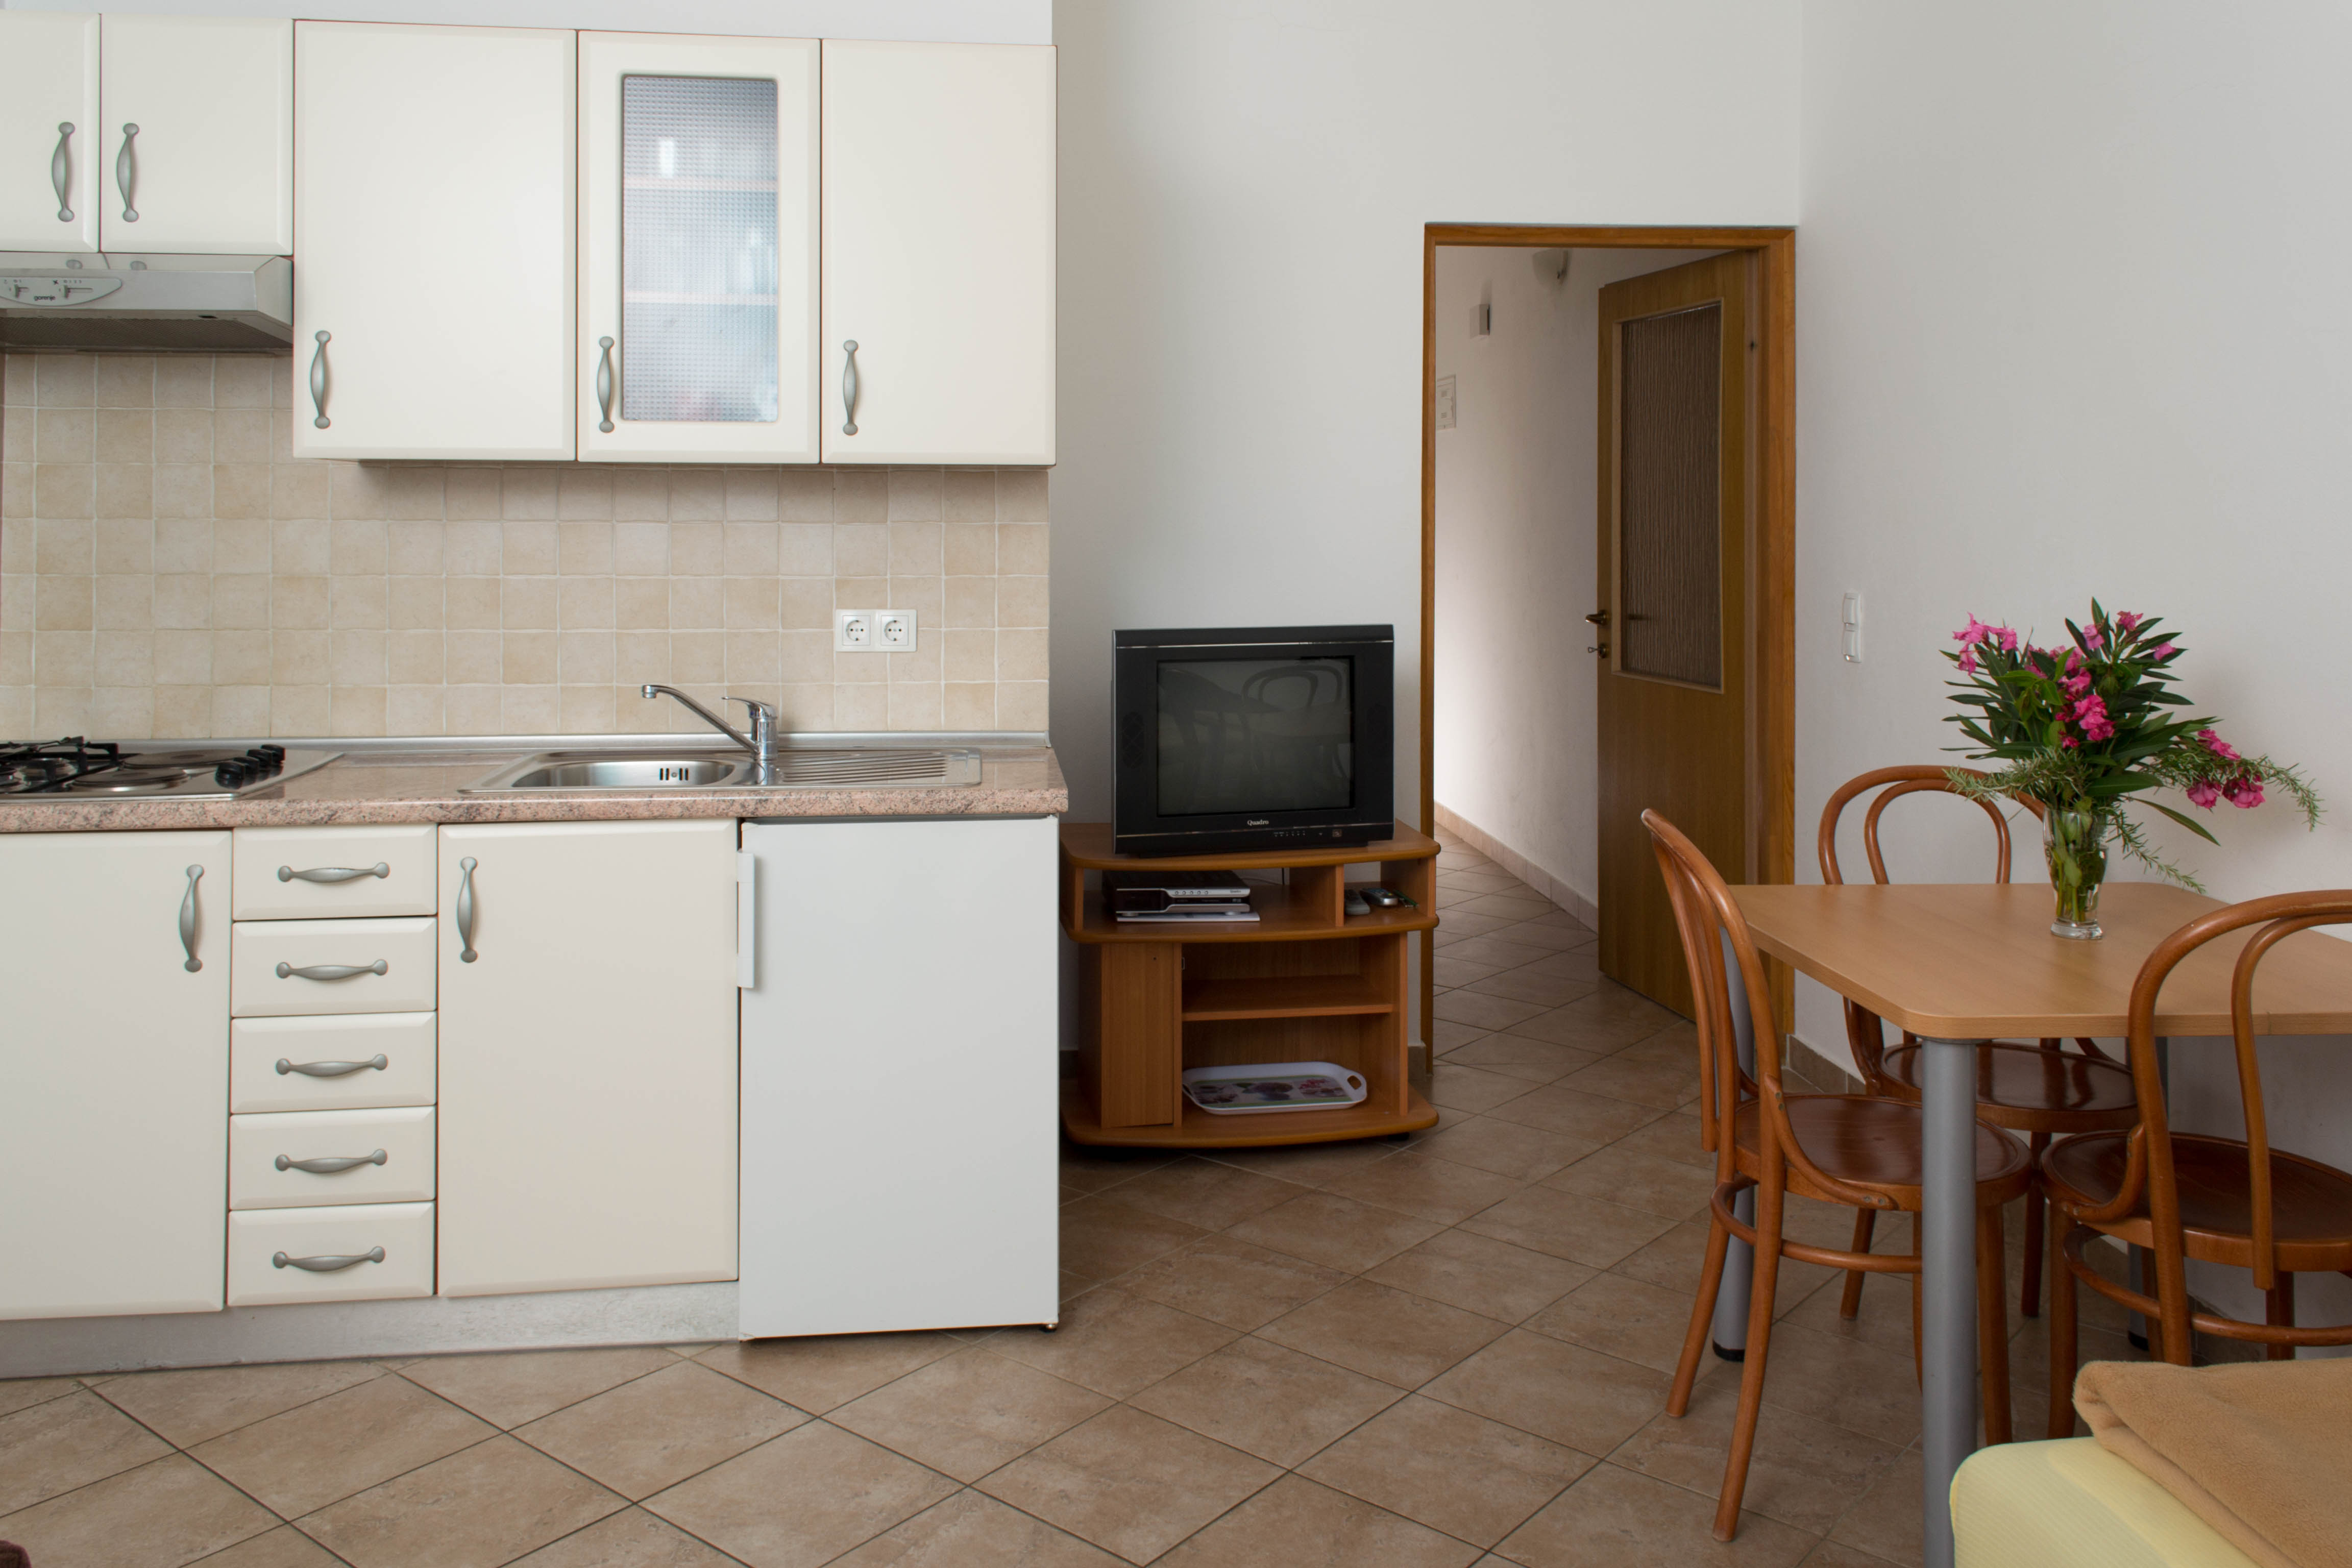 apartment kitchen punta skala petrcane zadar holiday rent